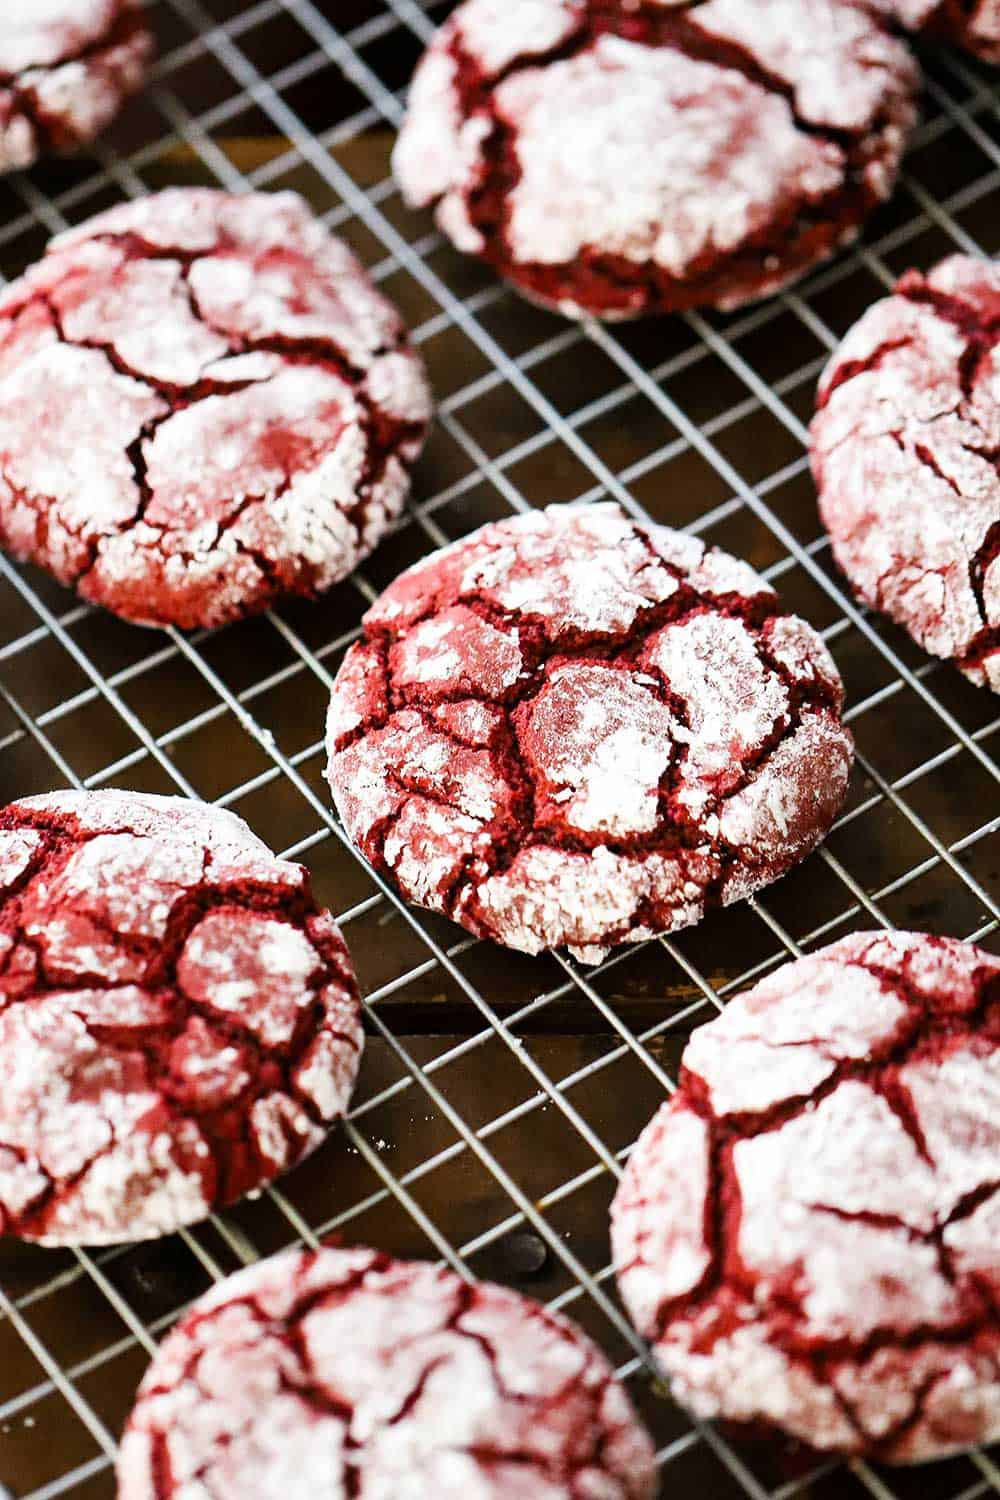 Red velvet cookies cooling on a baking rack.